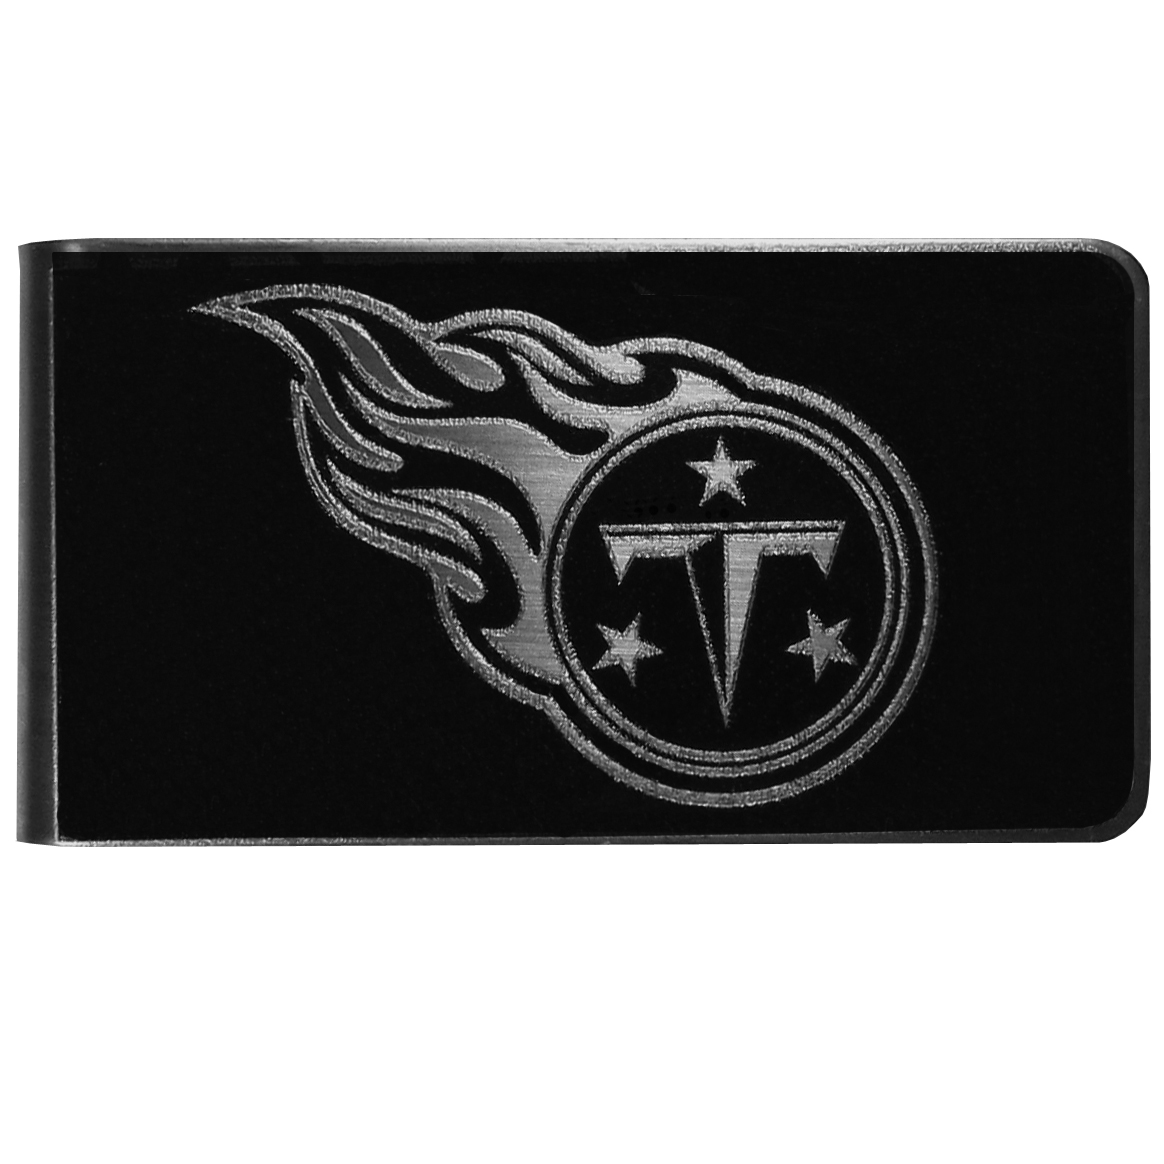 Tennessee Titans Black and Steel Money Clip - Our monochromatic steel money clips have a classic style and superior quality. The strong, steel clip has a black overlay of the Tennessee Titans logo over the brushed metal finish creating a stylish men's fashion accessory that would make any fan proud.